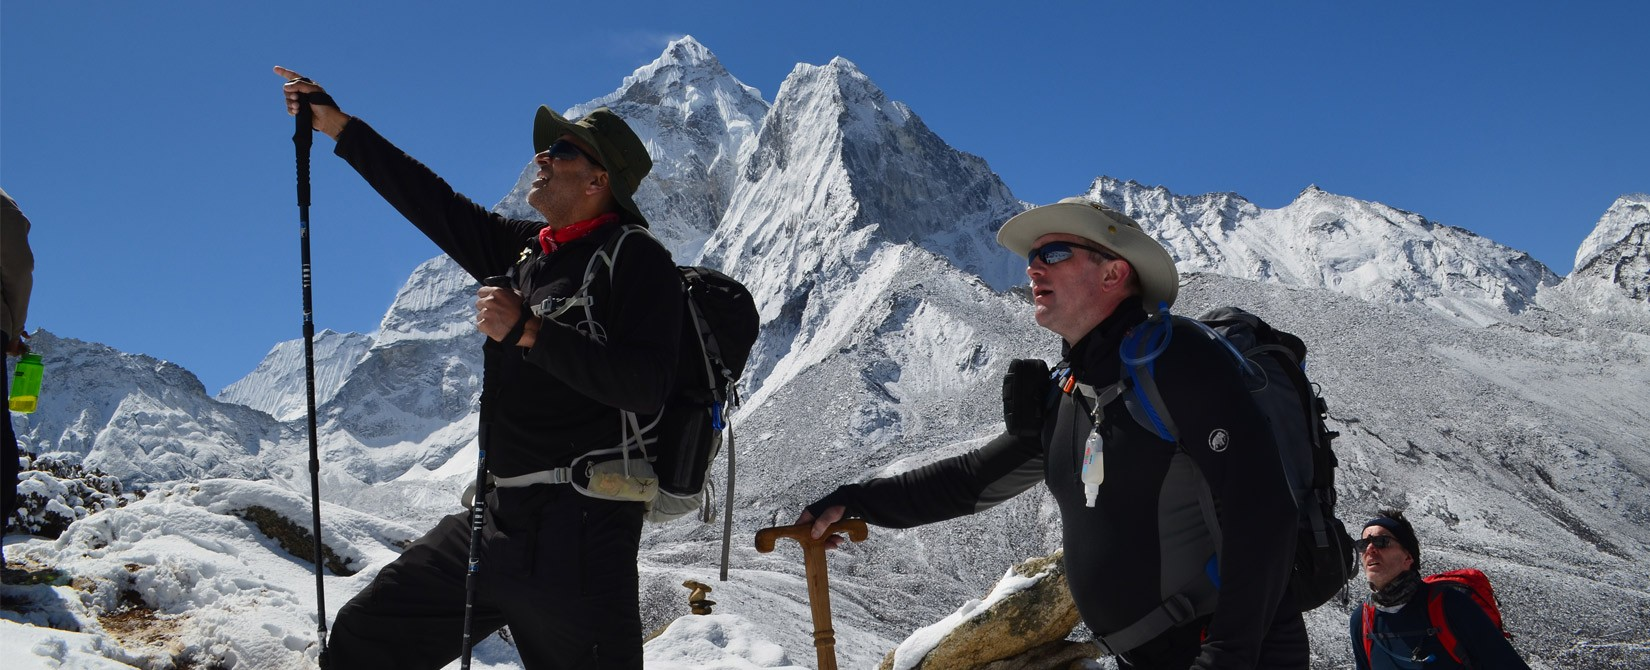 Everest Base Camp Trek Equipment Guide